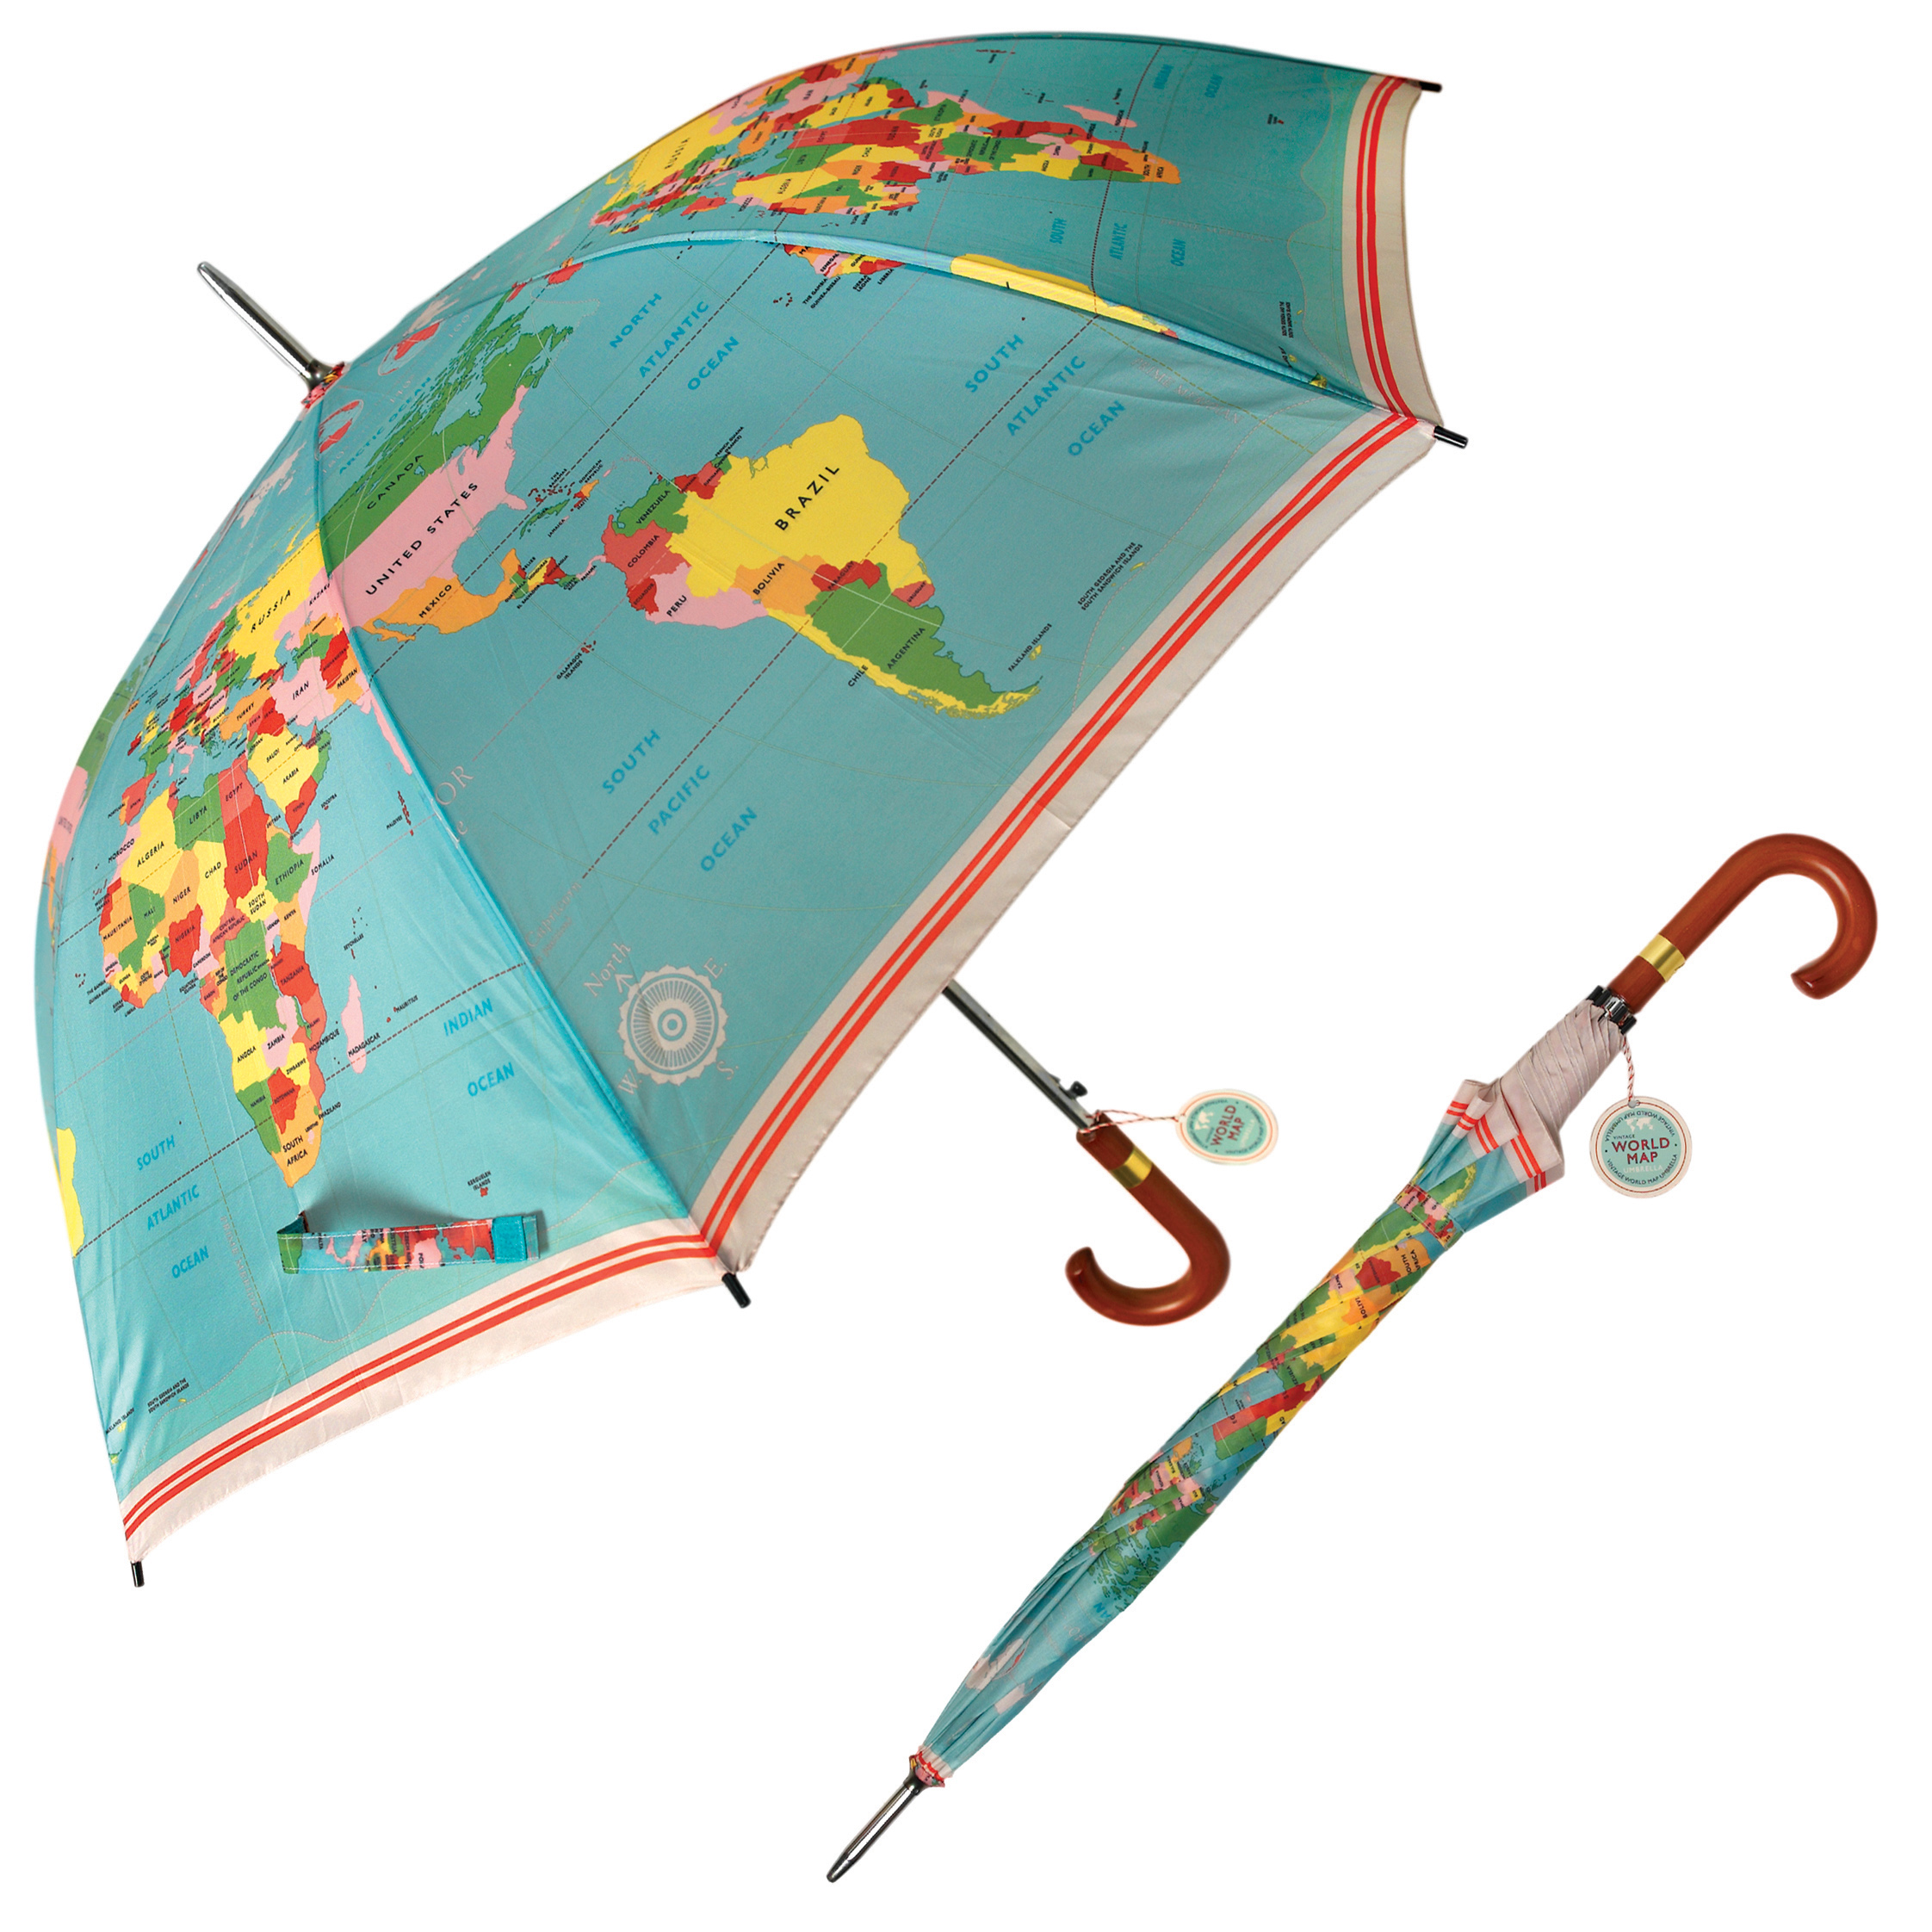 Gentleman's Umbrella with